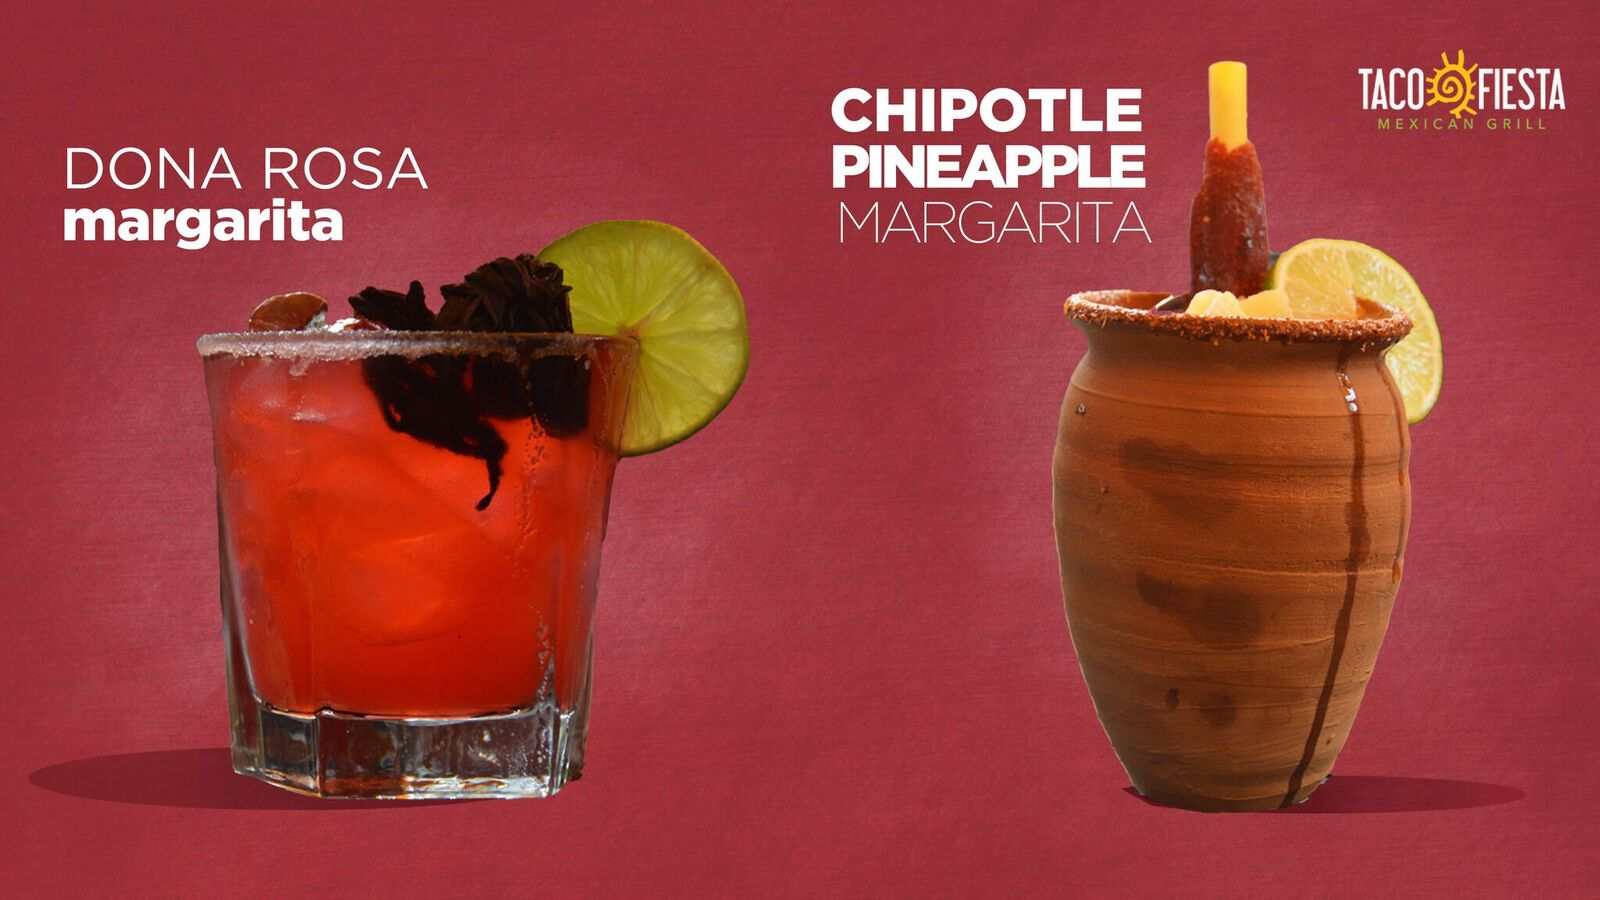 dona rosa margarita and chipotle pineapple margarita on a pink background